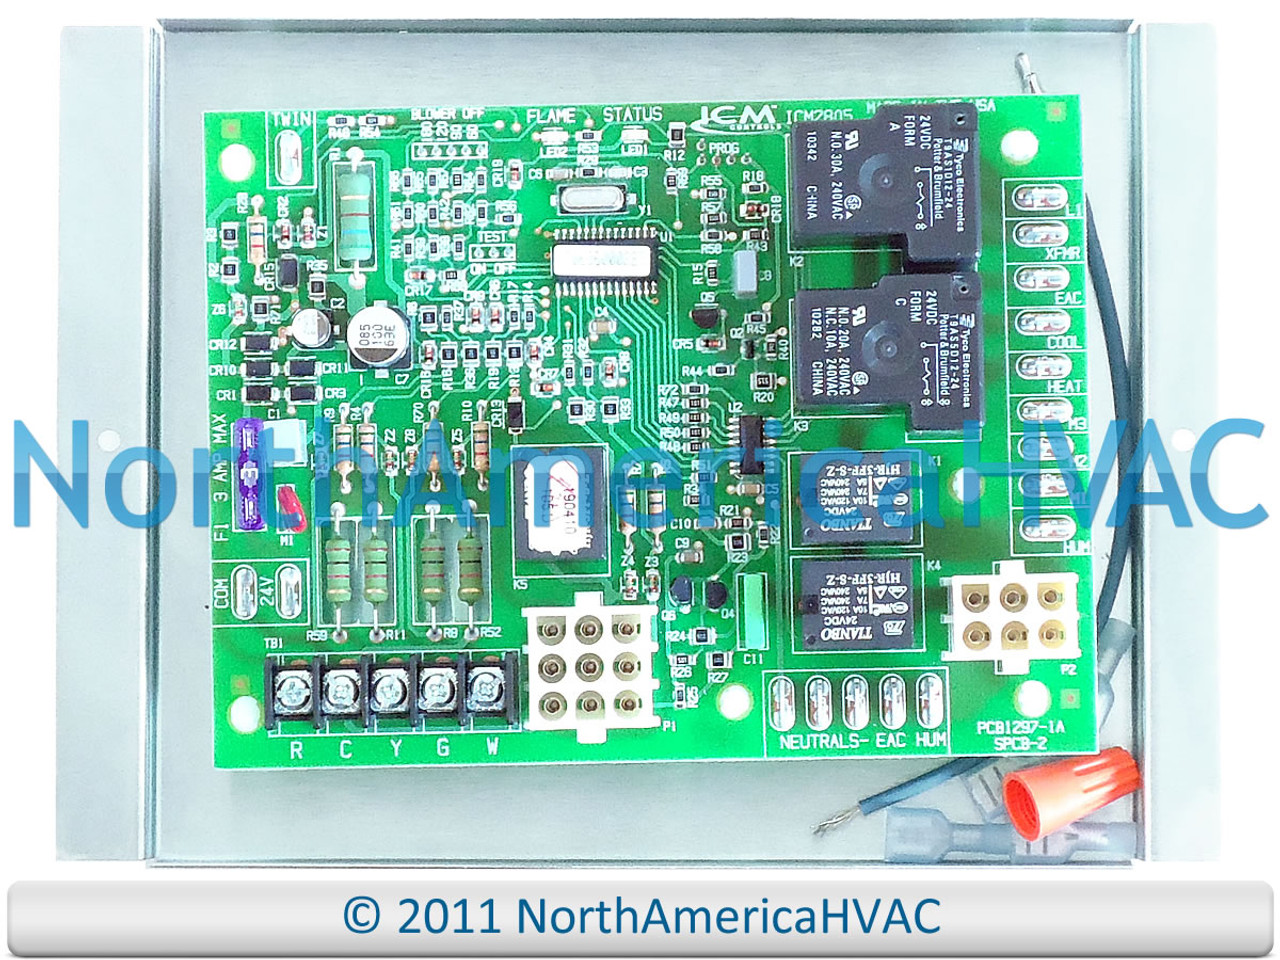 OEM Replacement for Frigidaire Furnace Control Circuit Board 624631-B